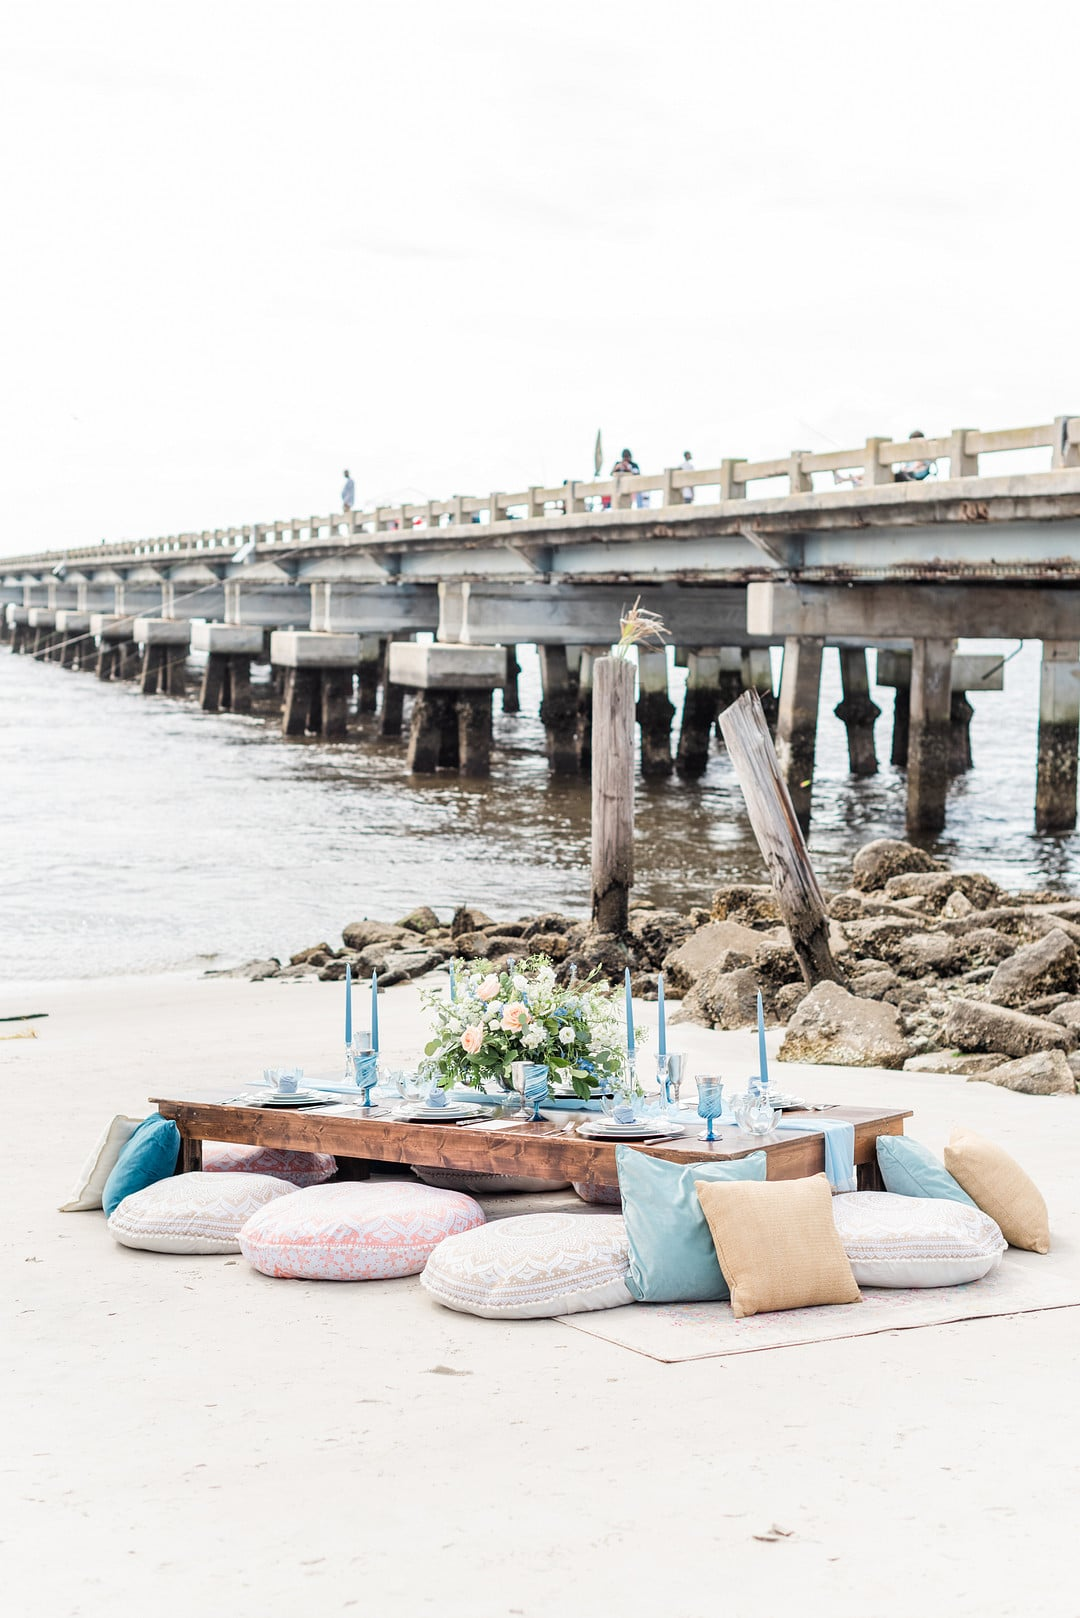 the table set up with pillows as chairs on the beach with a dock in the background